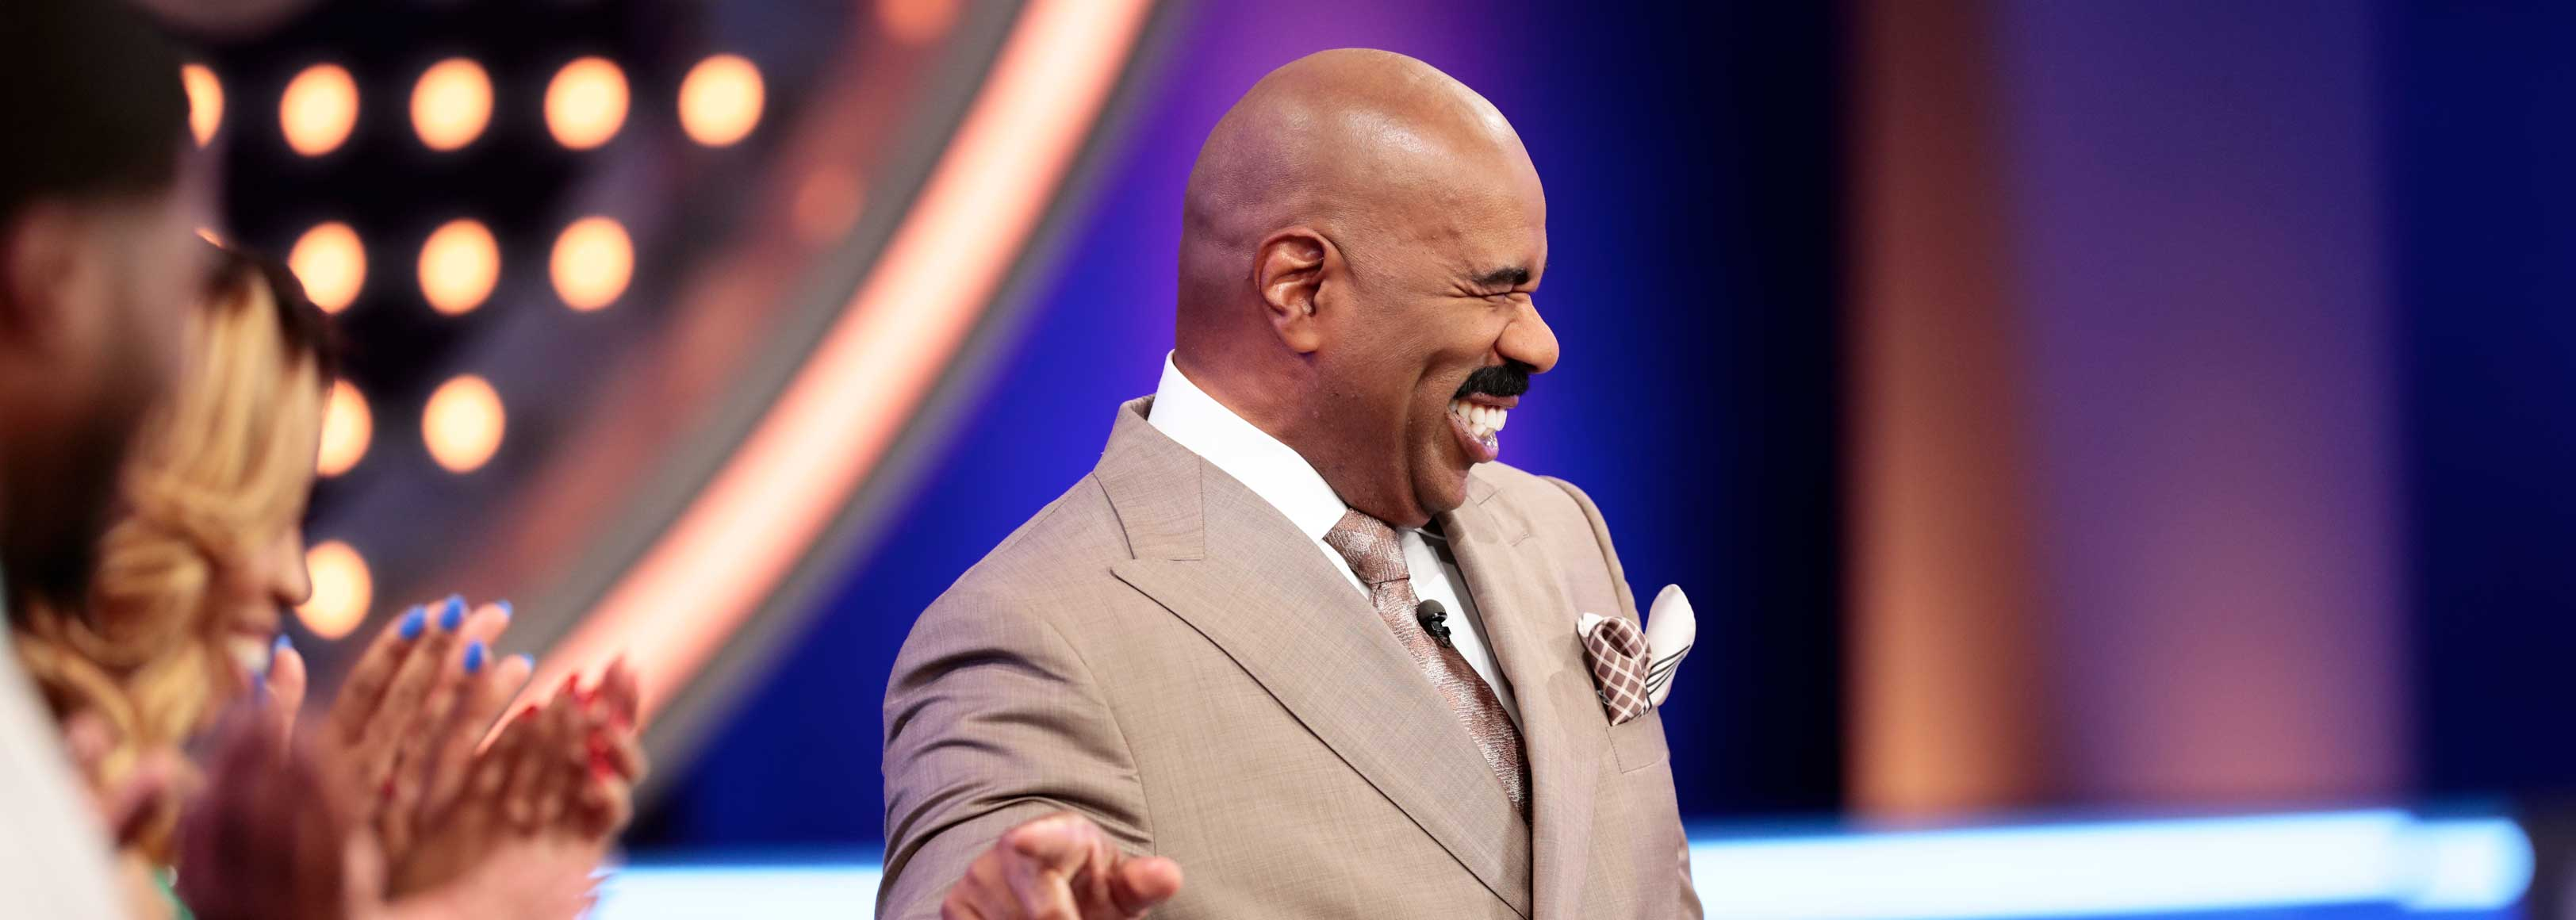 Is family feud filmed in georgia - Get The Latest News